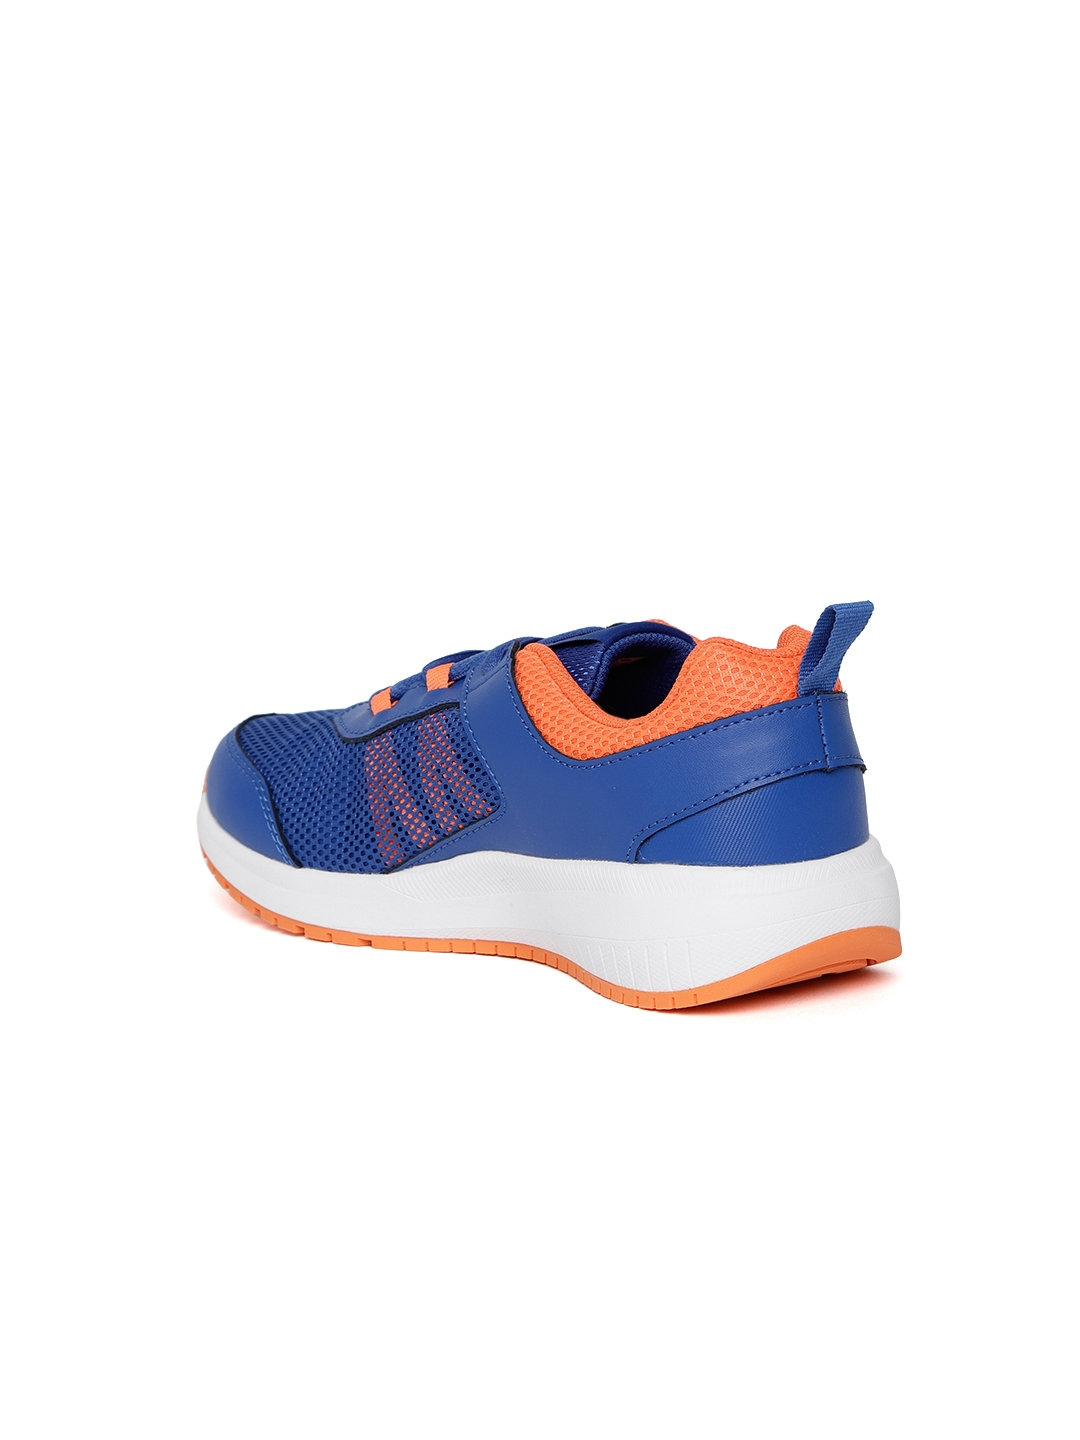 e6ce0a52f96d81 Buy Reebok Boys Blue Road Supreme Running Shoes - Sports Shoes for ...